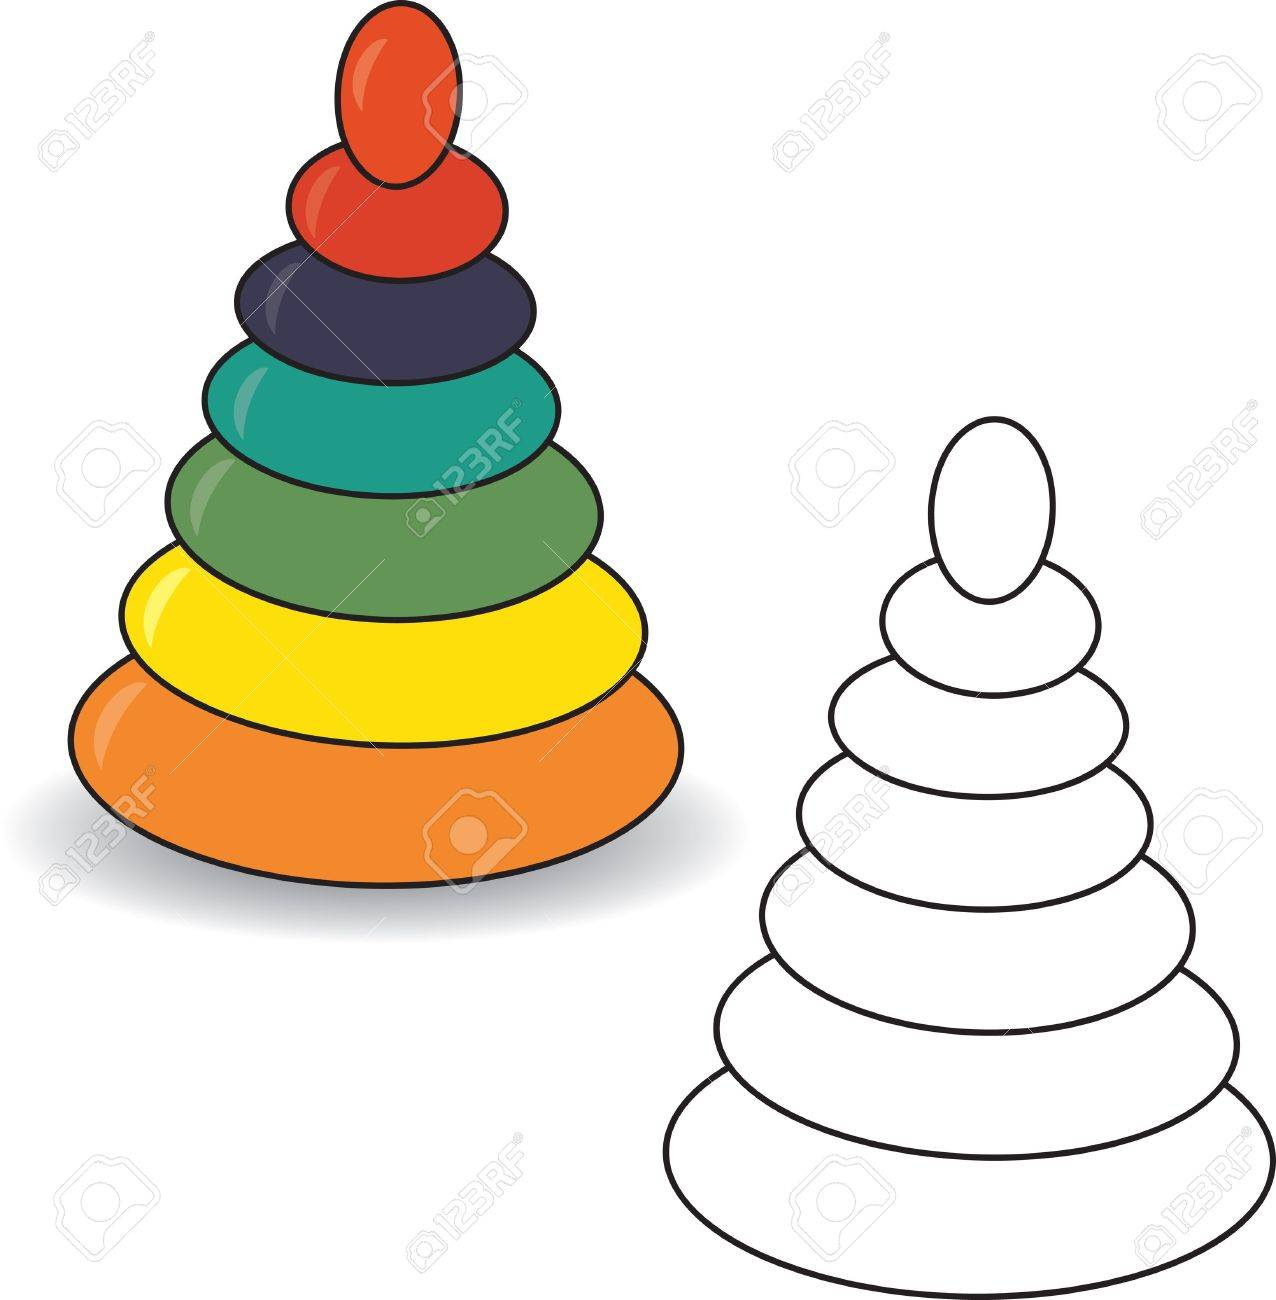 Coloring book  Pyramid  illustration  Baby toy Stock Vector - 15385403